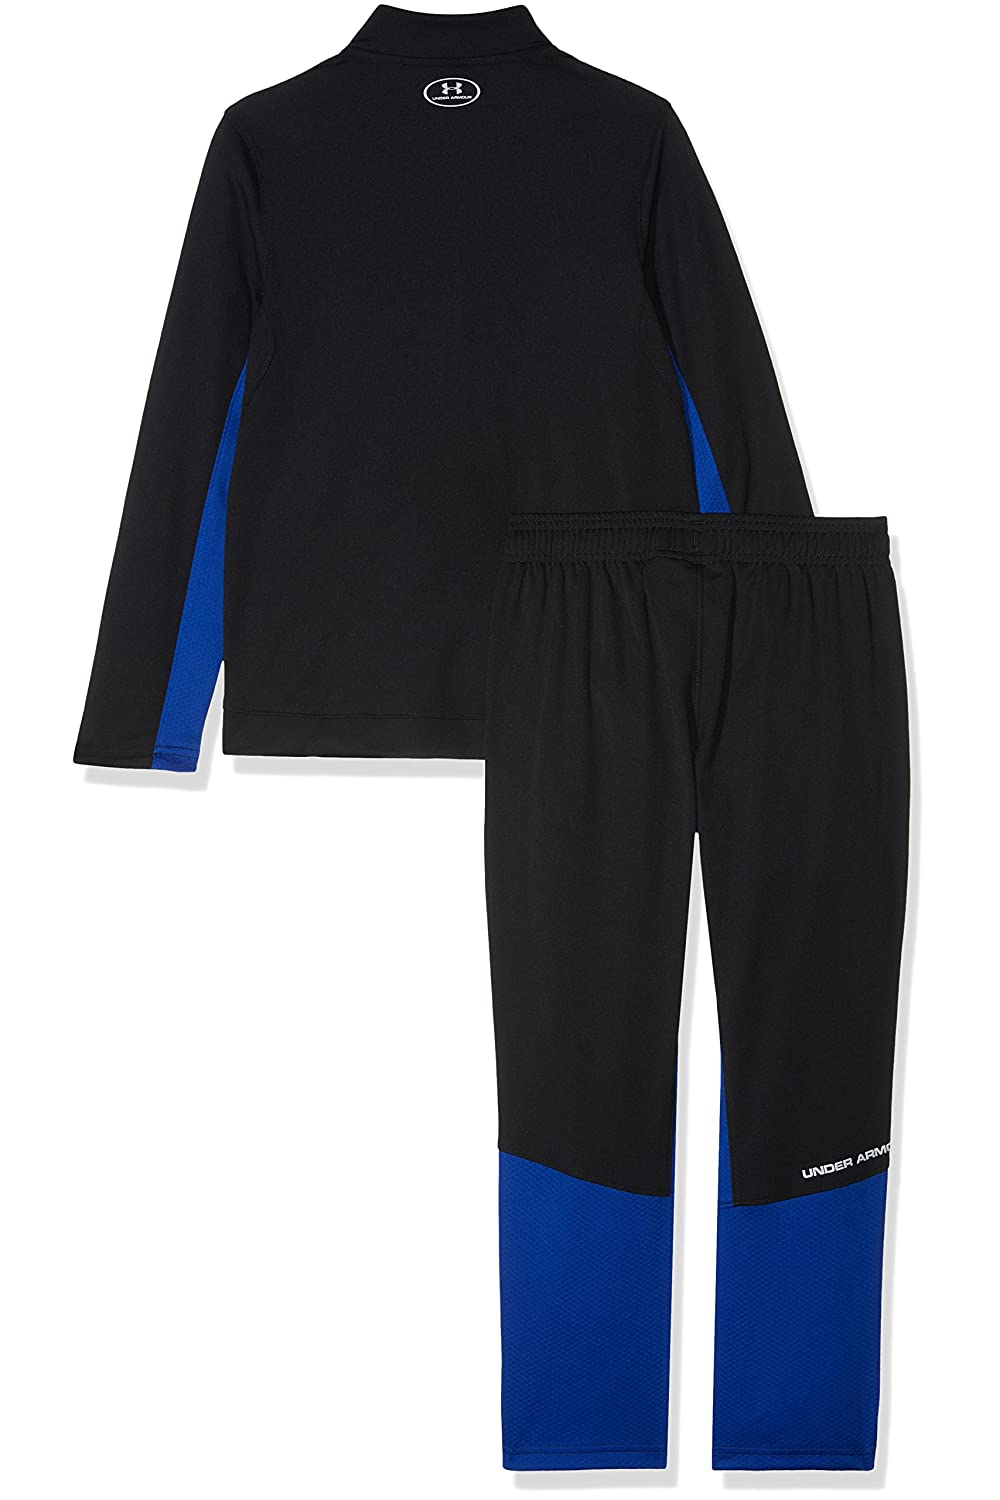 Under Armour Chicos y Challenger II Knit Calentamiento Set: Amazon.es: Deportes y aire libre